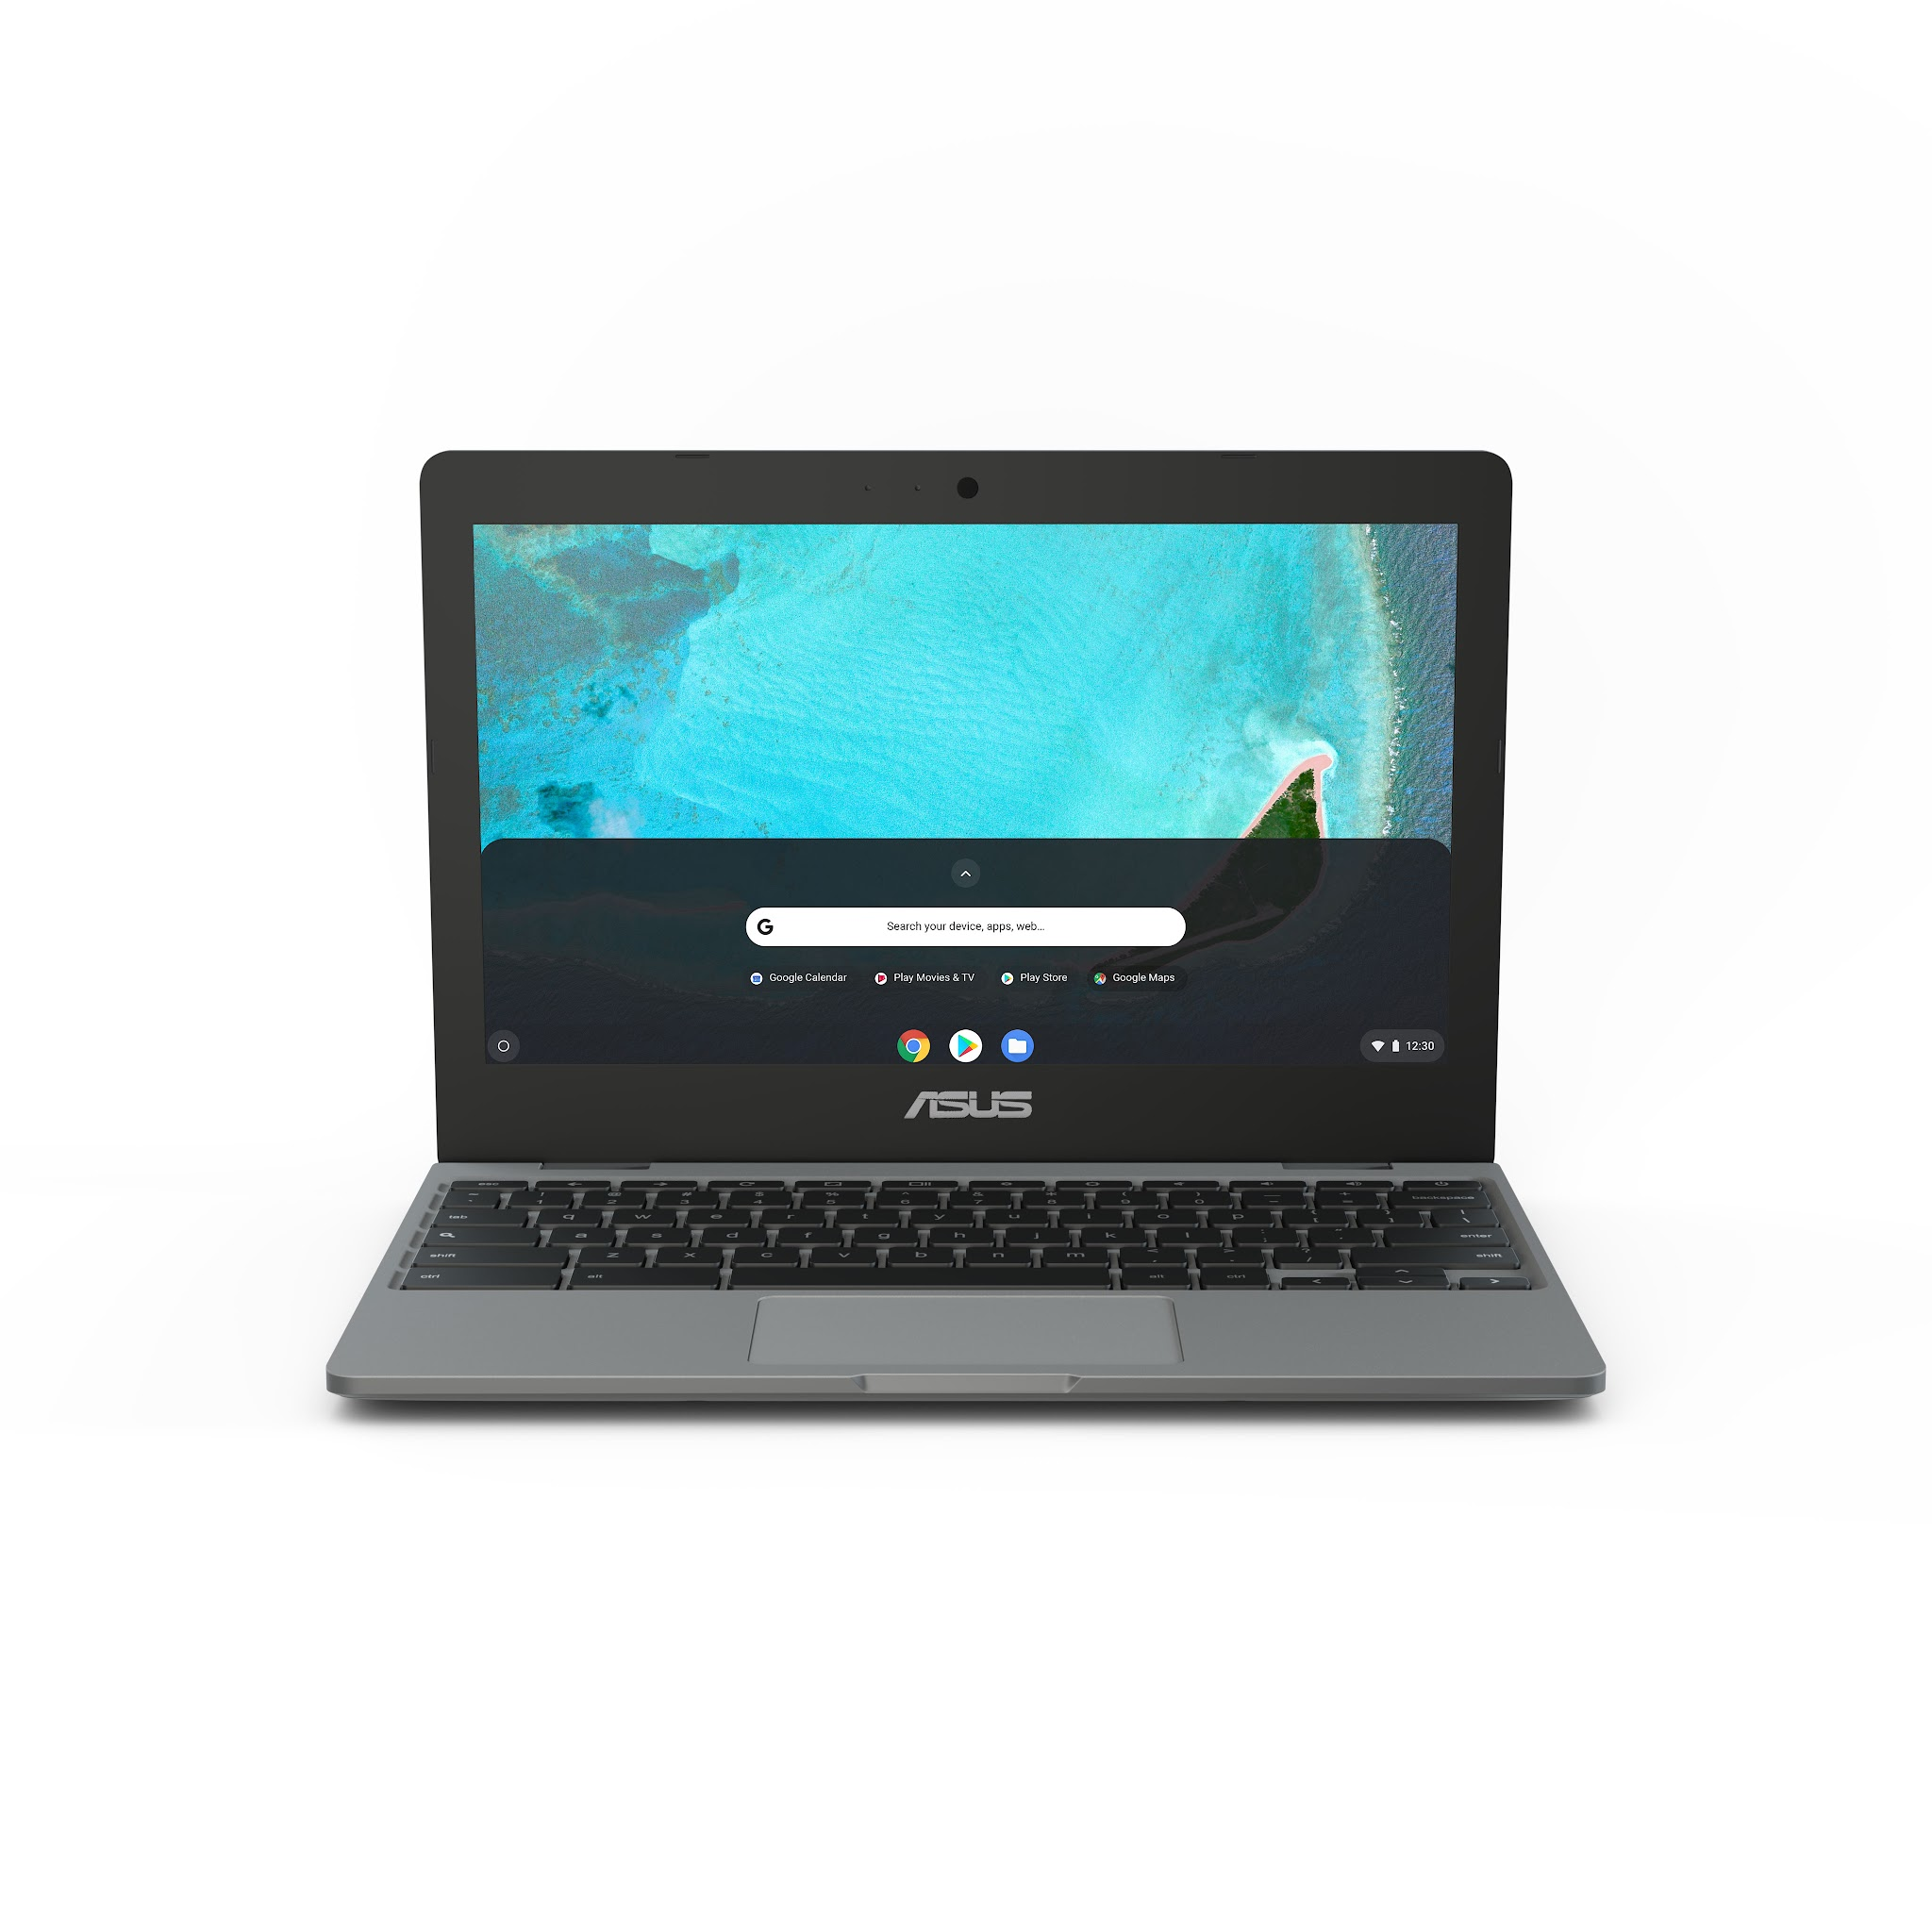 ASUS Chromebook C223 - photo 2